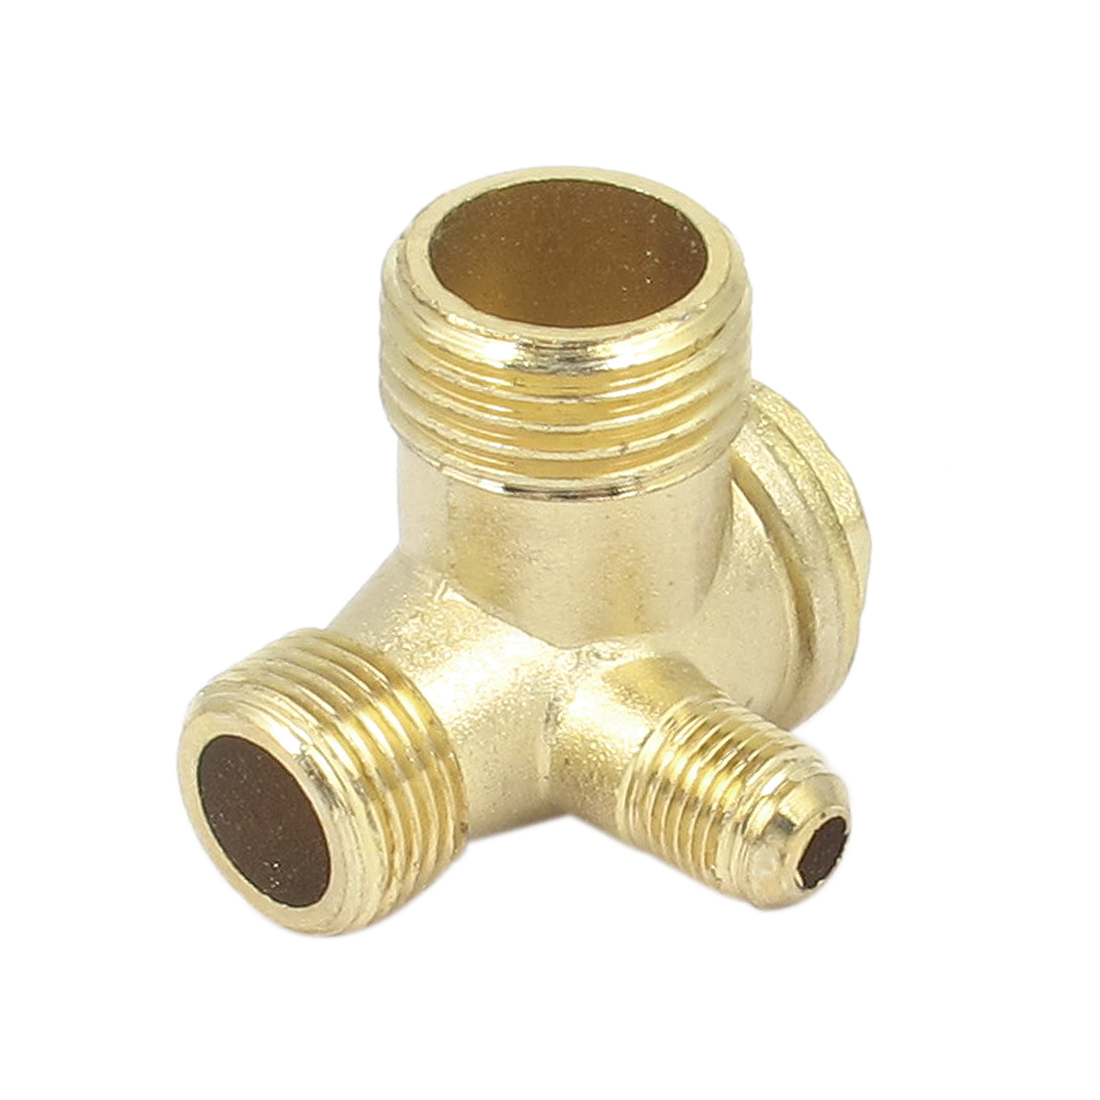 Air Compressor 3 Ports Brass Male Threaded Check Valve Connector Tool